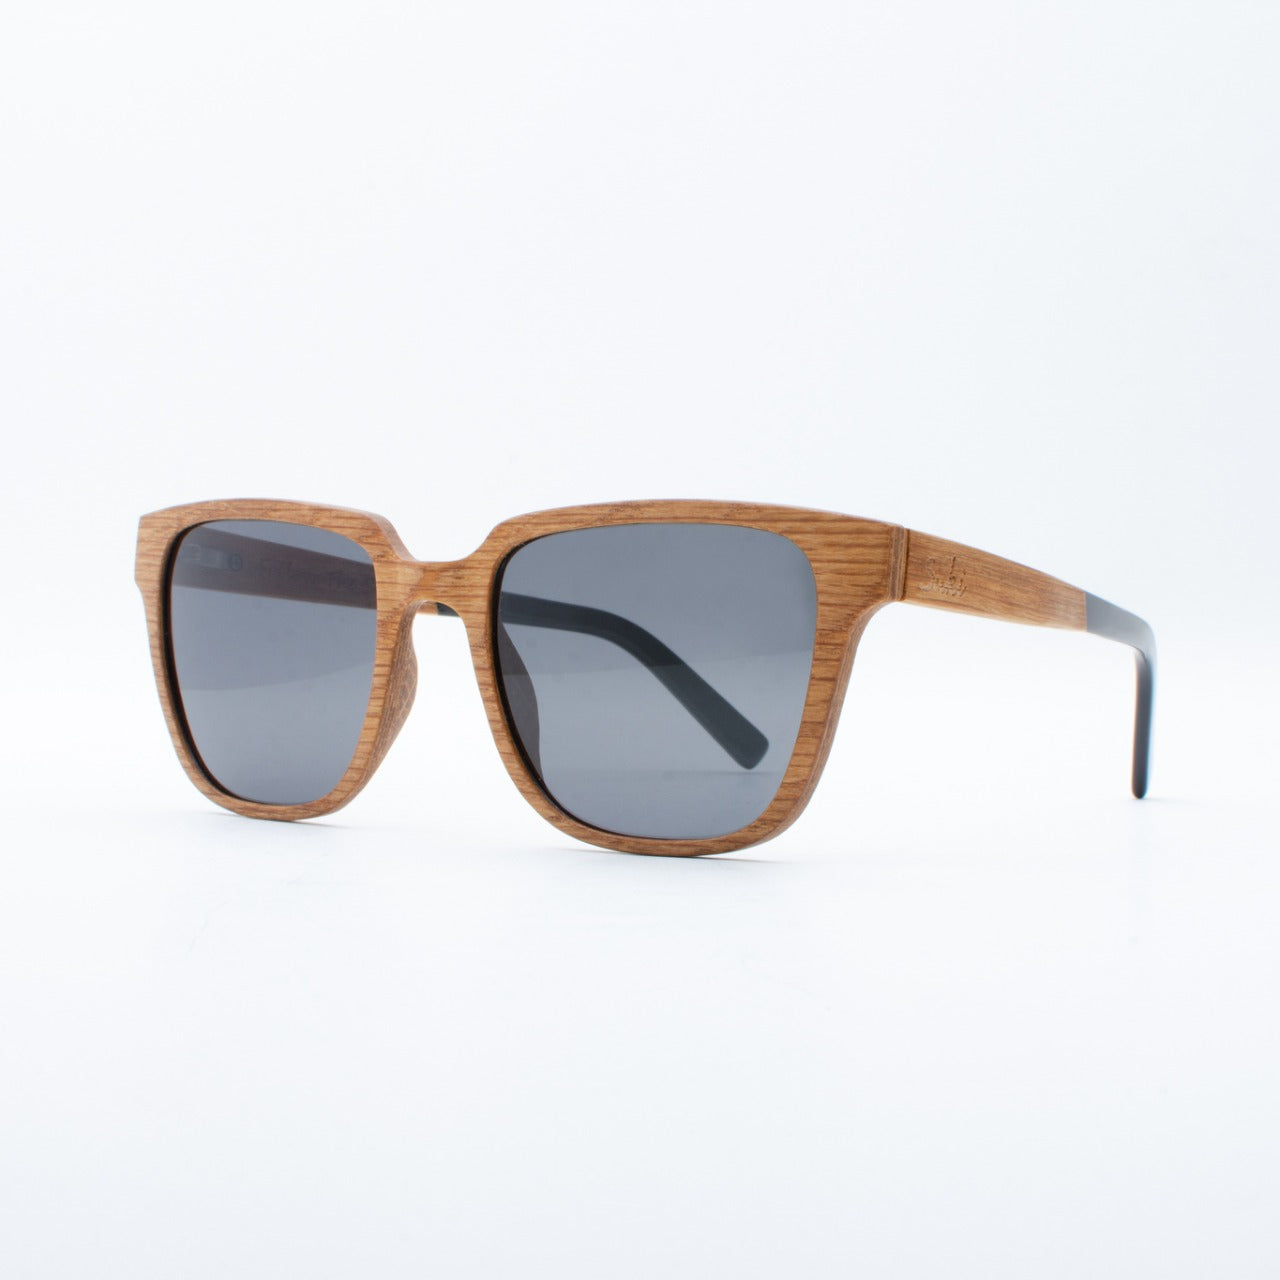 WOODEN SUNGLASSES RINCA OAKWOOD SUKI